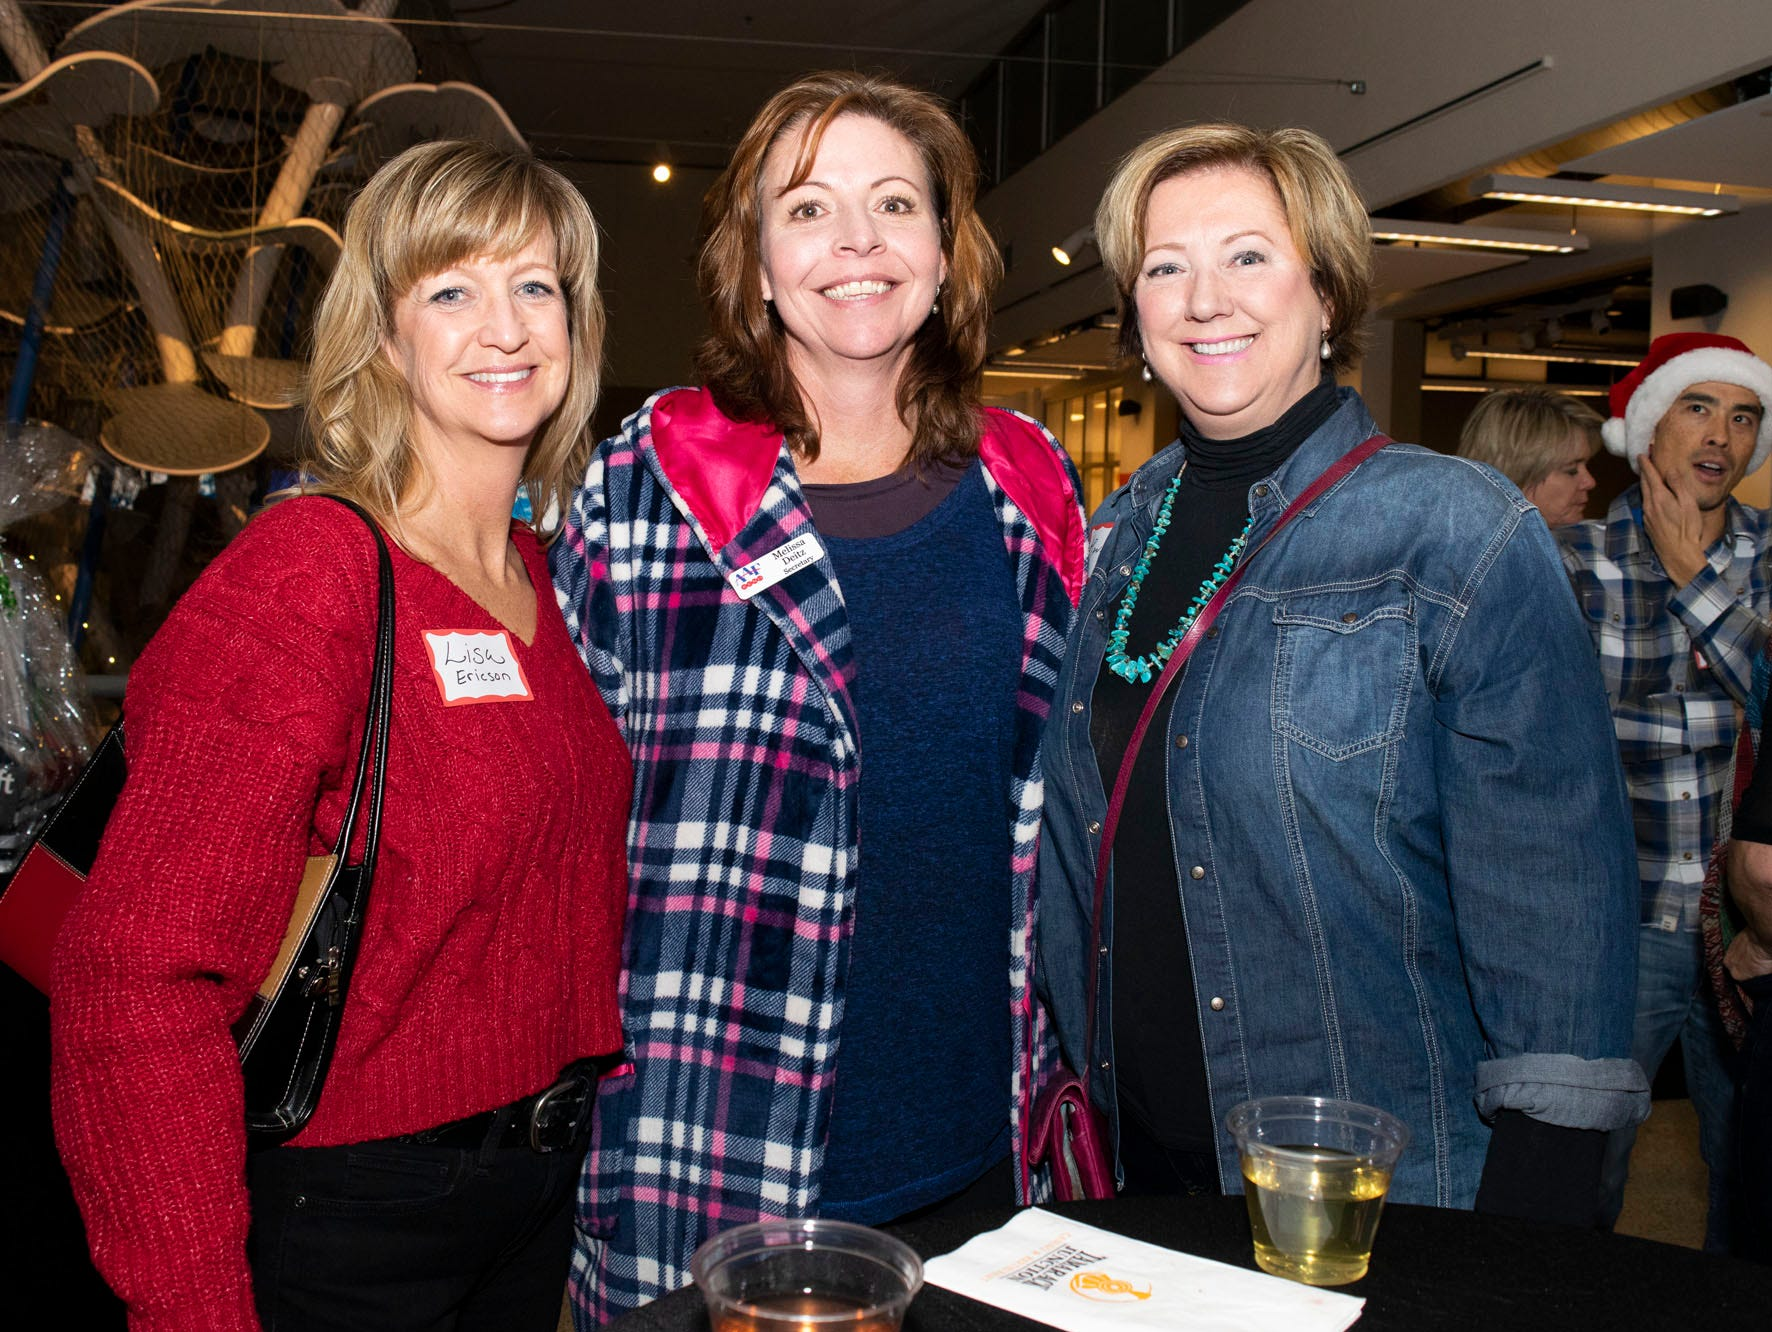 Lisa Ericson, Melissa Dietz, and Maura Kenney attend Mingle Bells 2018 at the Discovery Museum on Thursday, Dec. 6, 2018. Reno, Nev.